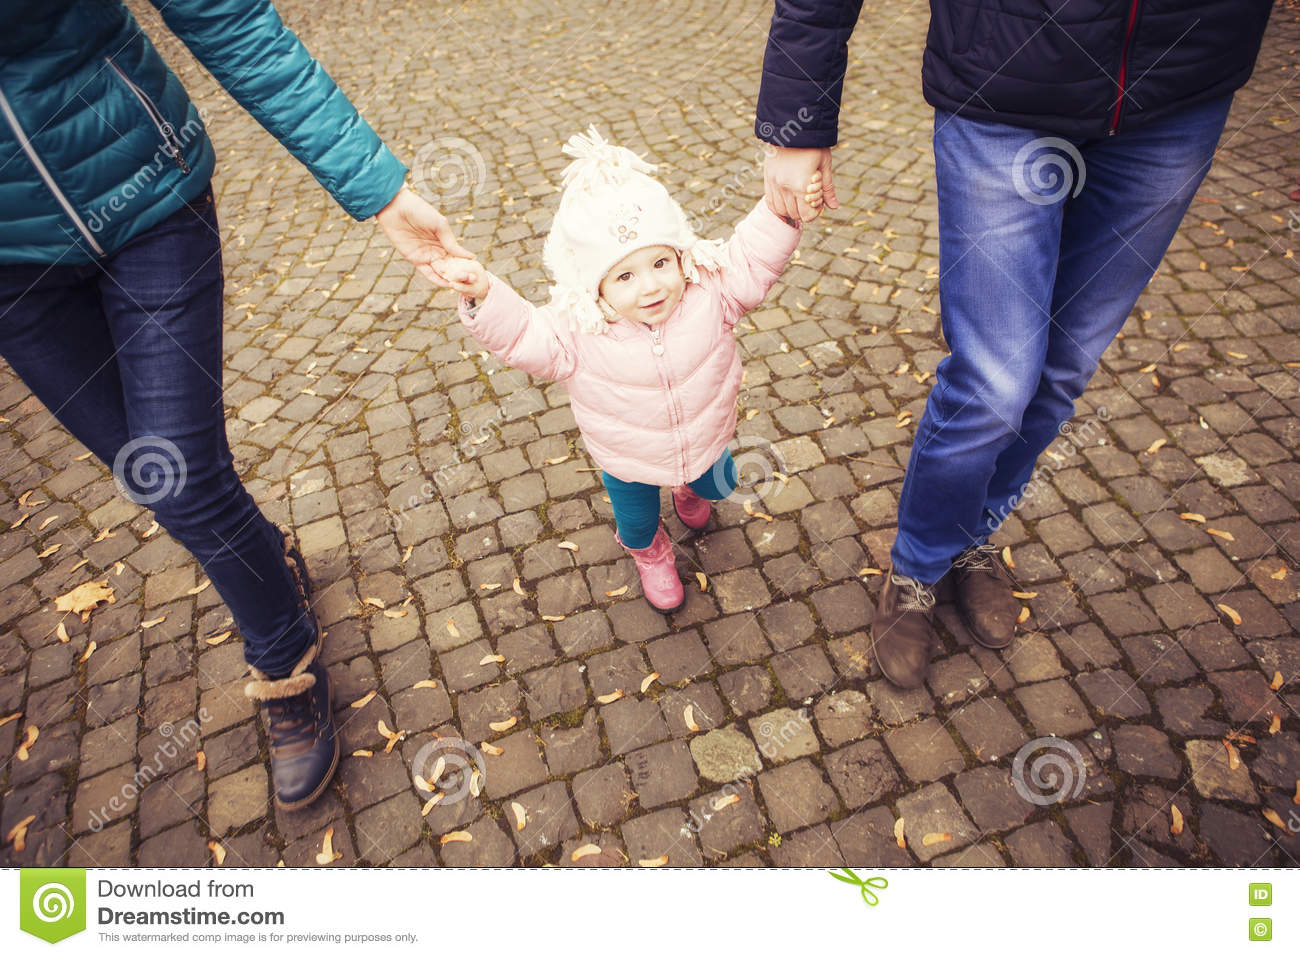 Happy loving family(mother, father and little daughter kid) outdoors walking having fun on a park in autumn season. Fallen yellow